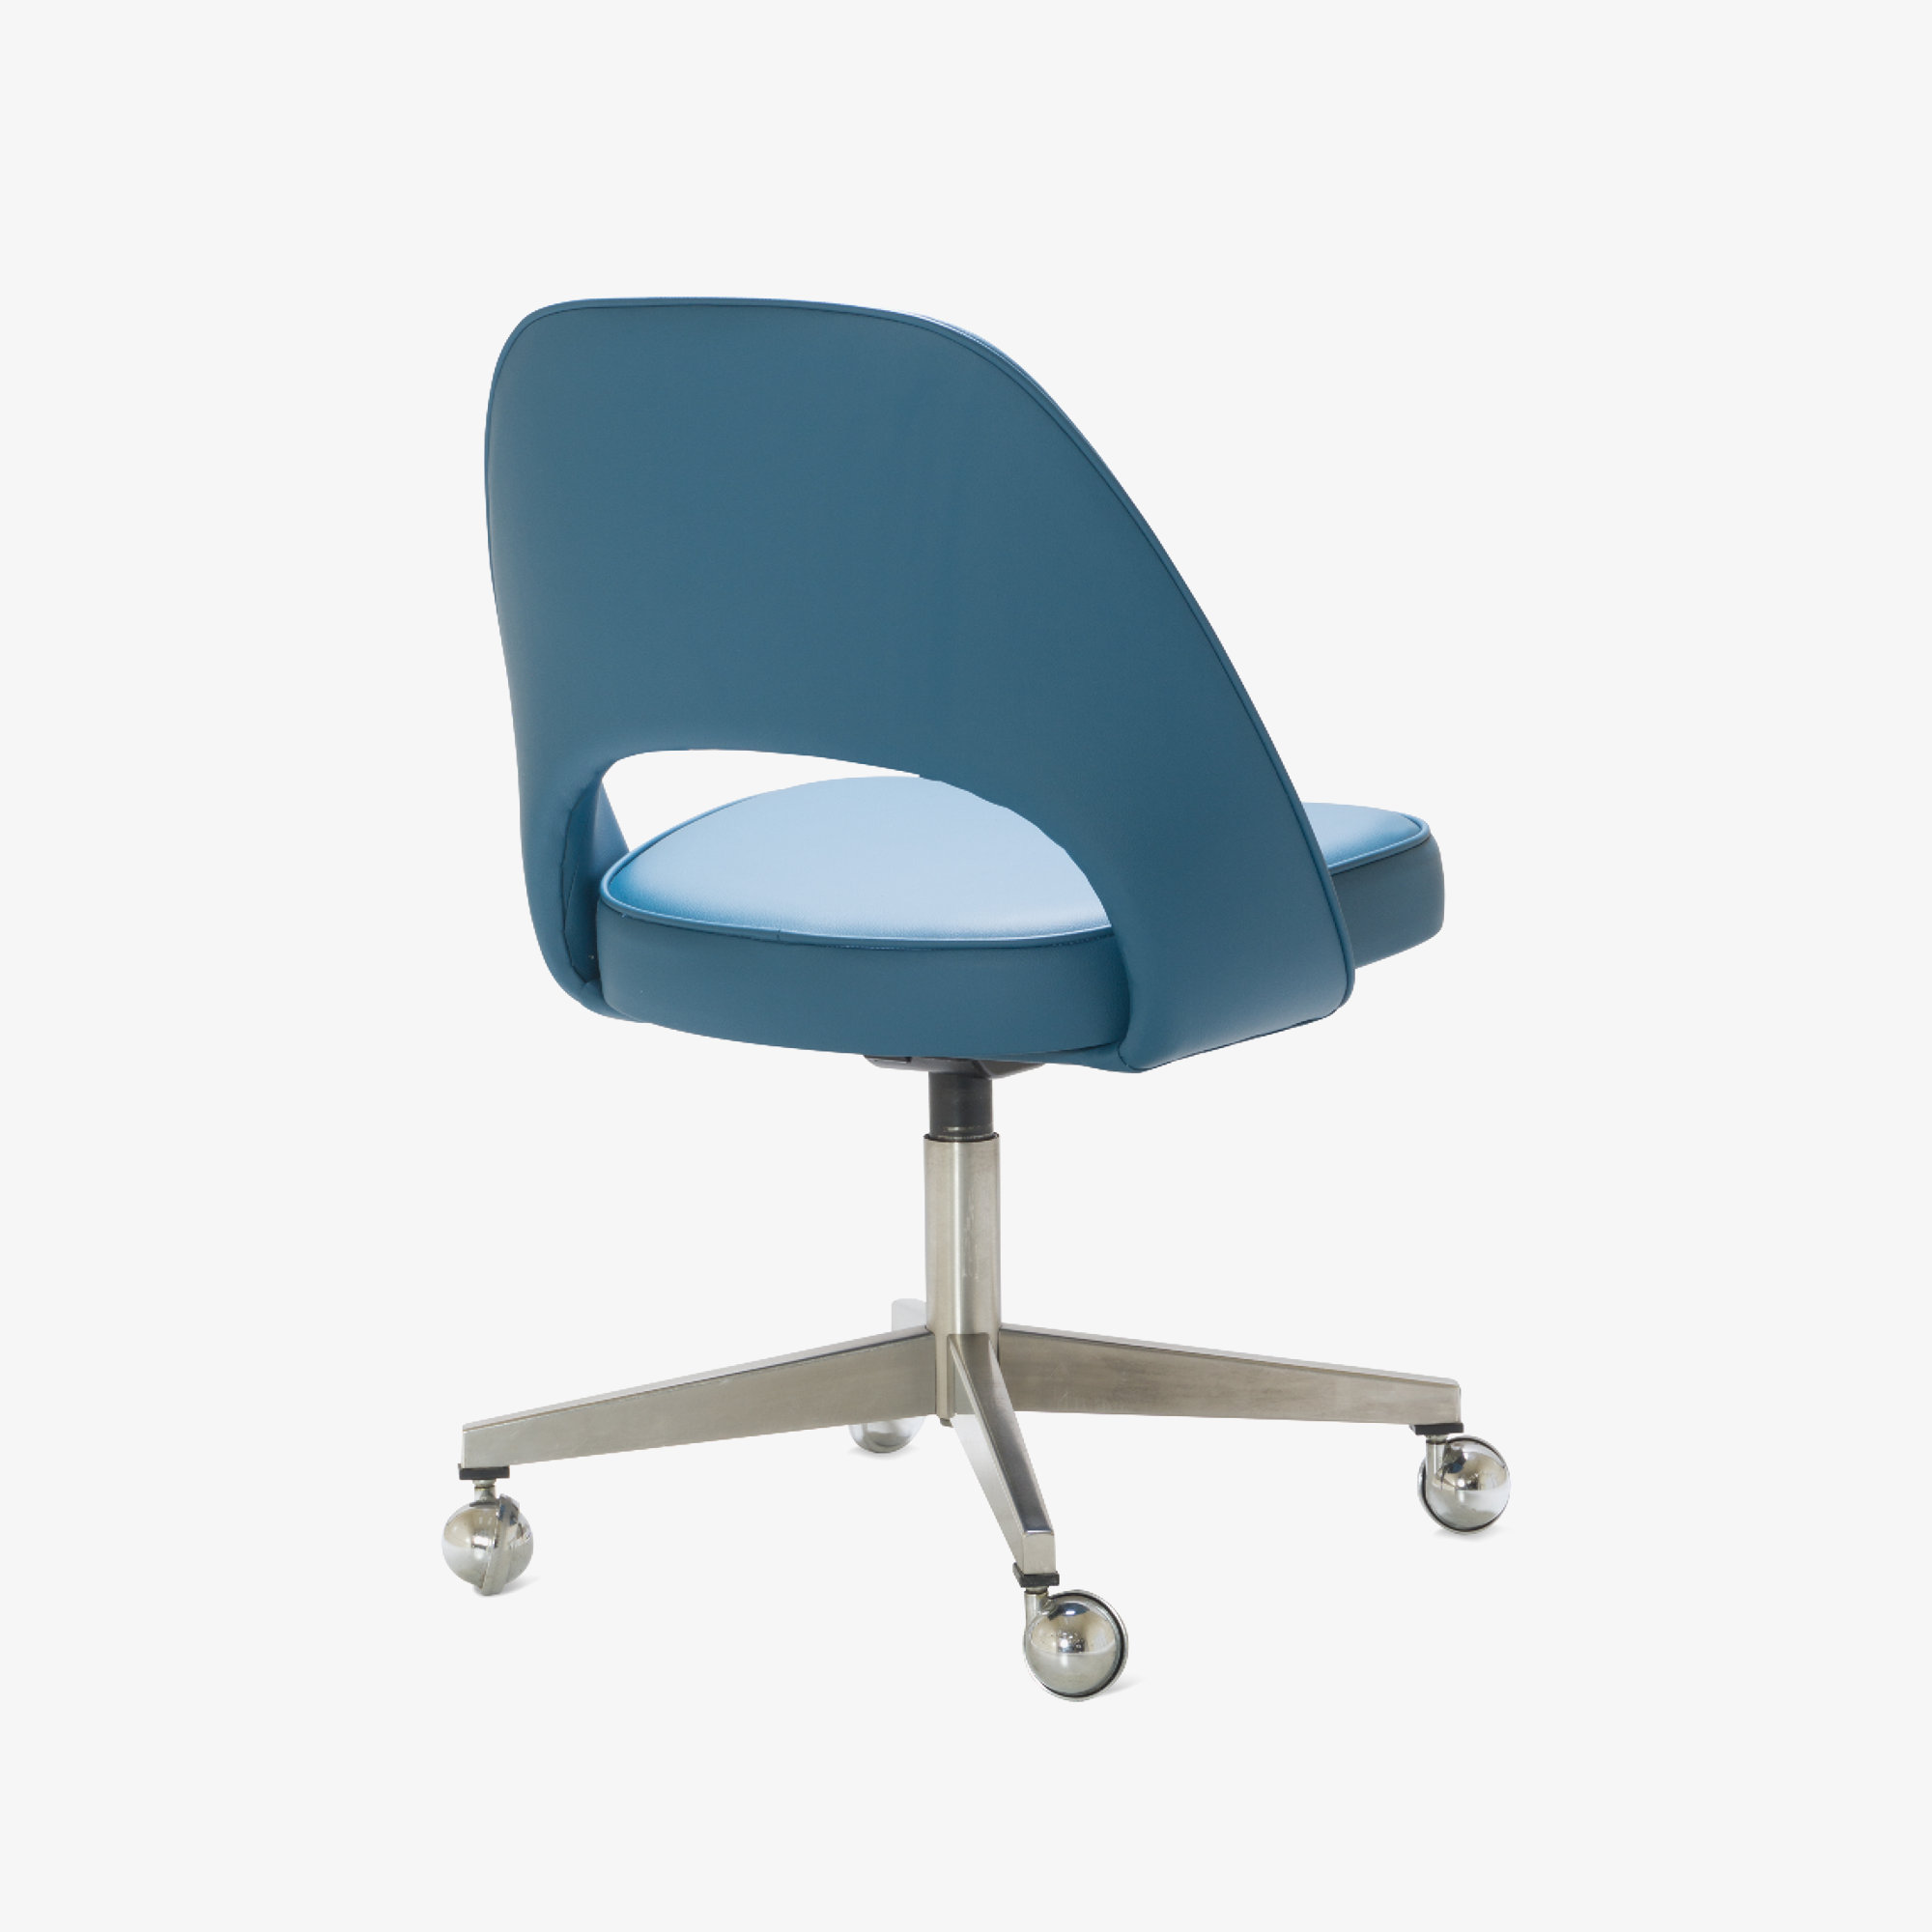 Saarinen Executive Armless Chair in Pelle Faux Leather, Swivel Base3.png